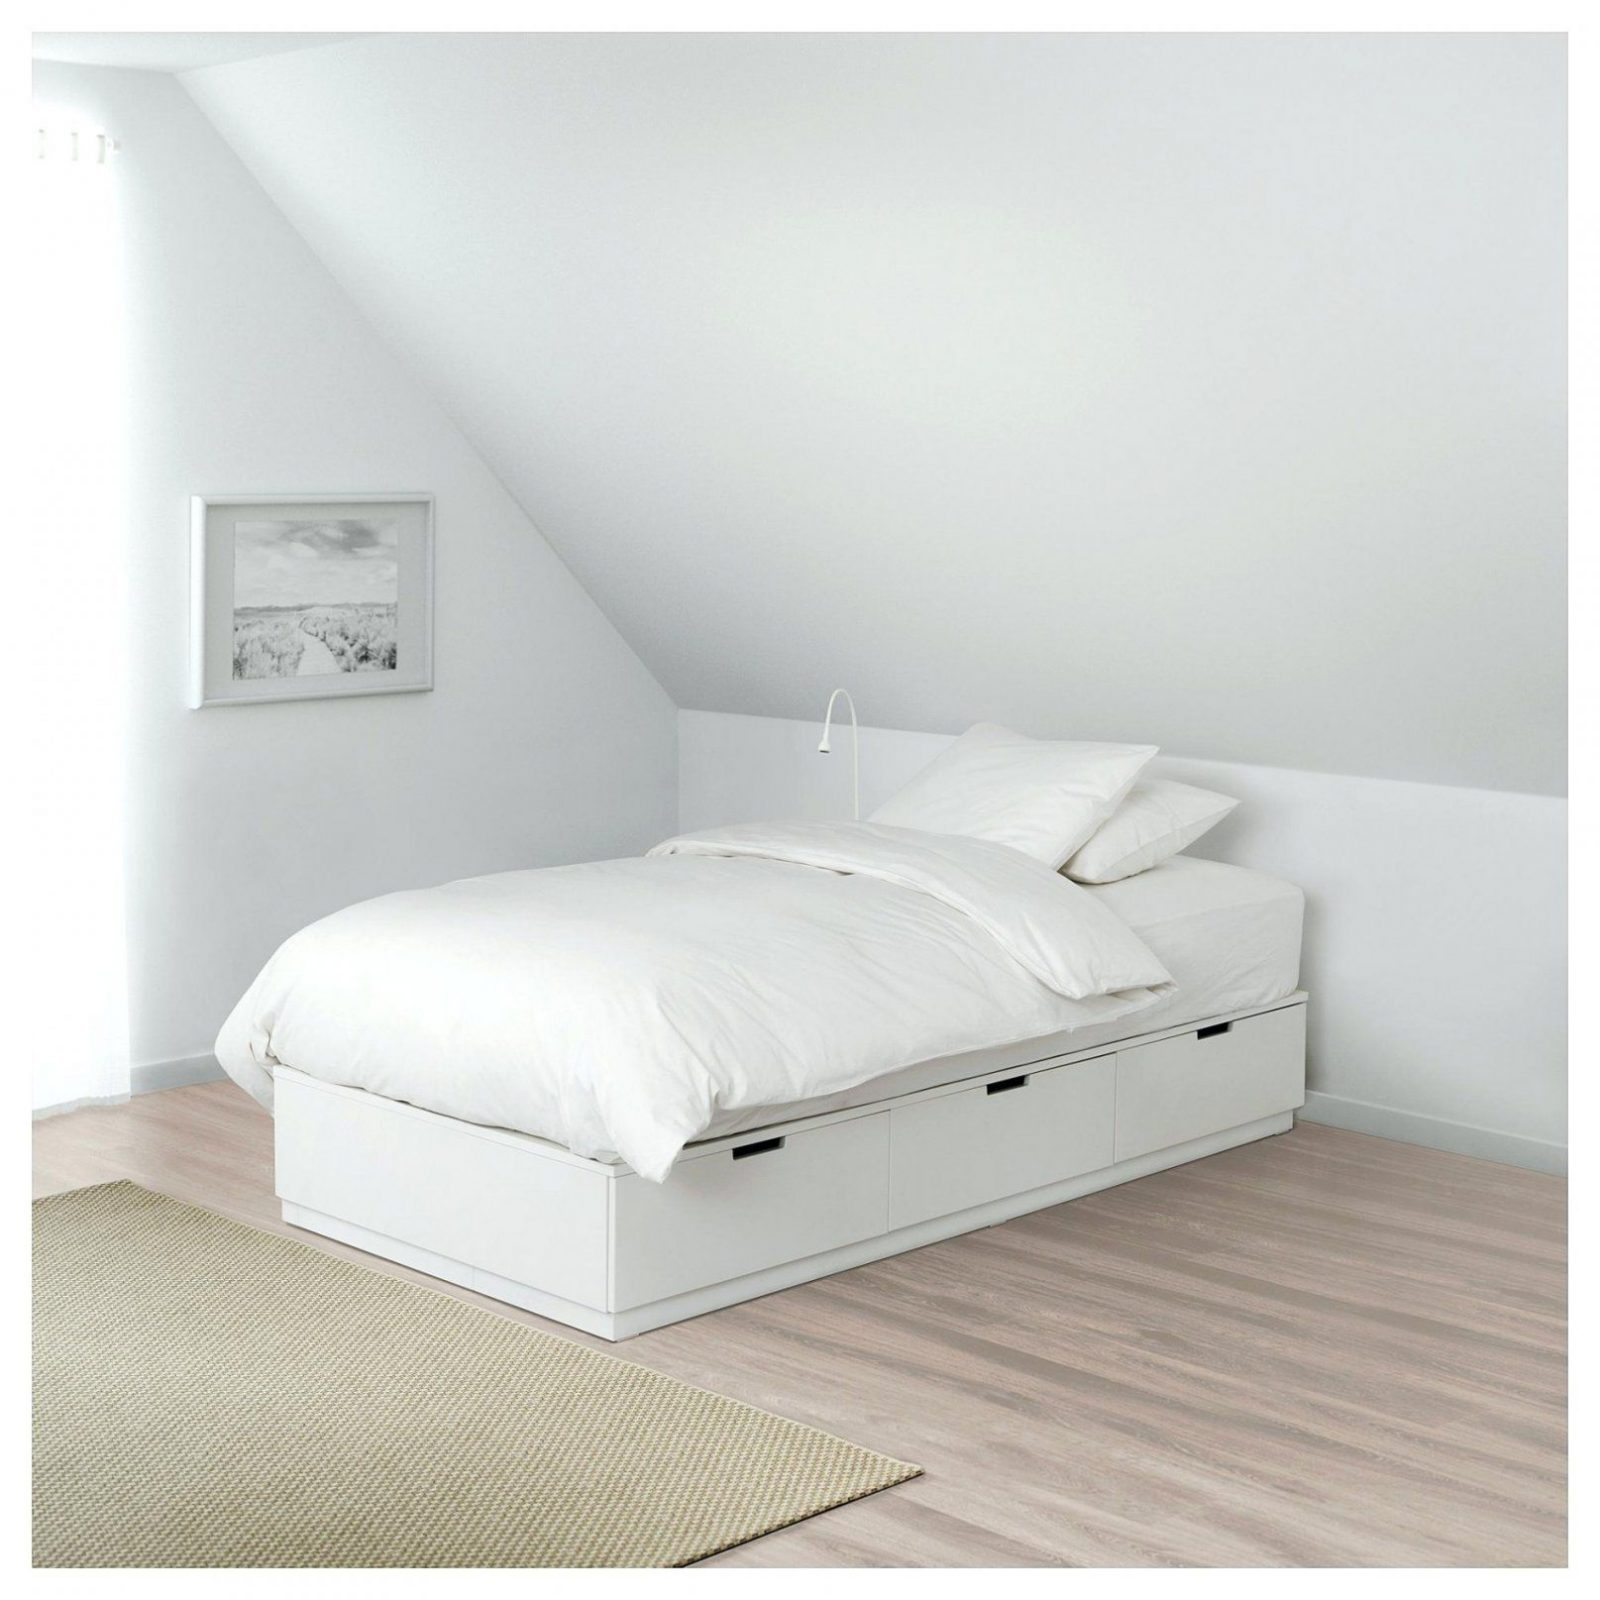 ikea matratze 120x200 koudschuim matras ikea unique. Black Bedroom Furniture Sets. Home Design Ideas